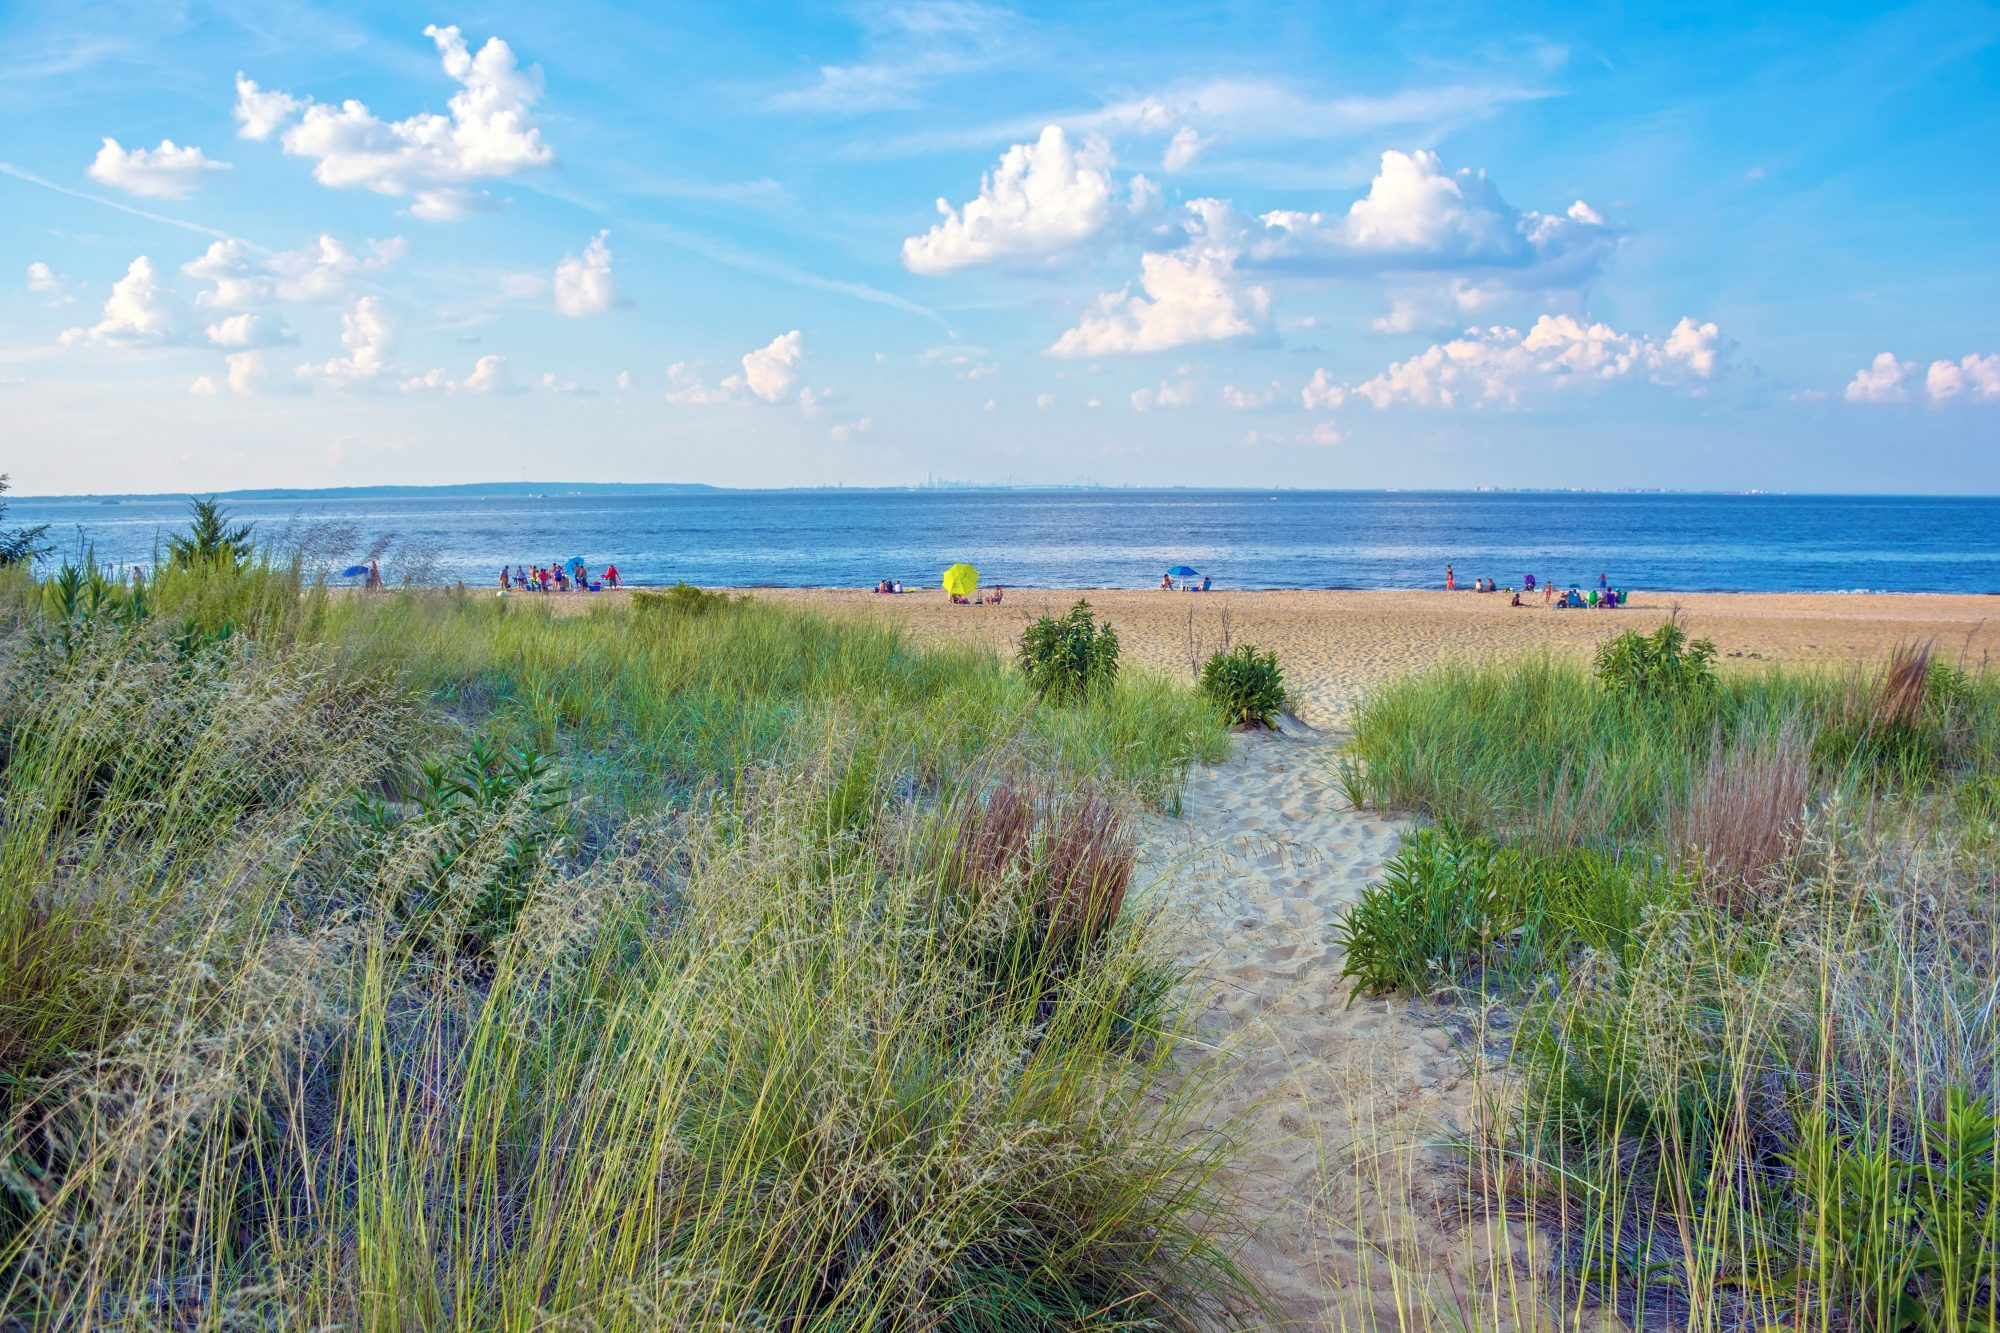 Another Jersey Shore town, though one much more relaxed than high-energy Atlantic City, Keansburg's median home price is on the low end for properties along the Shore.  The public beach lacks lifeguards but offers powdery sand and stunning sunsets...